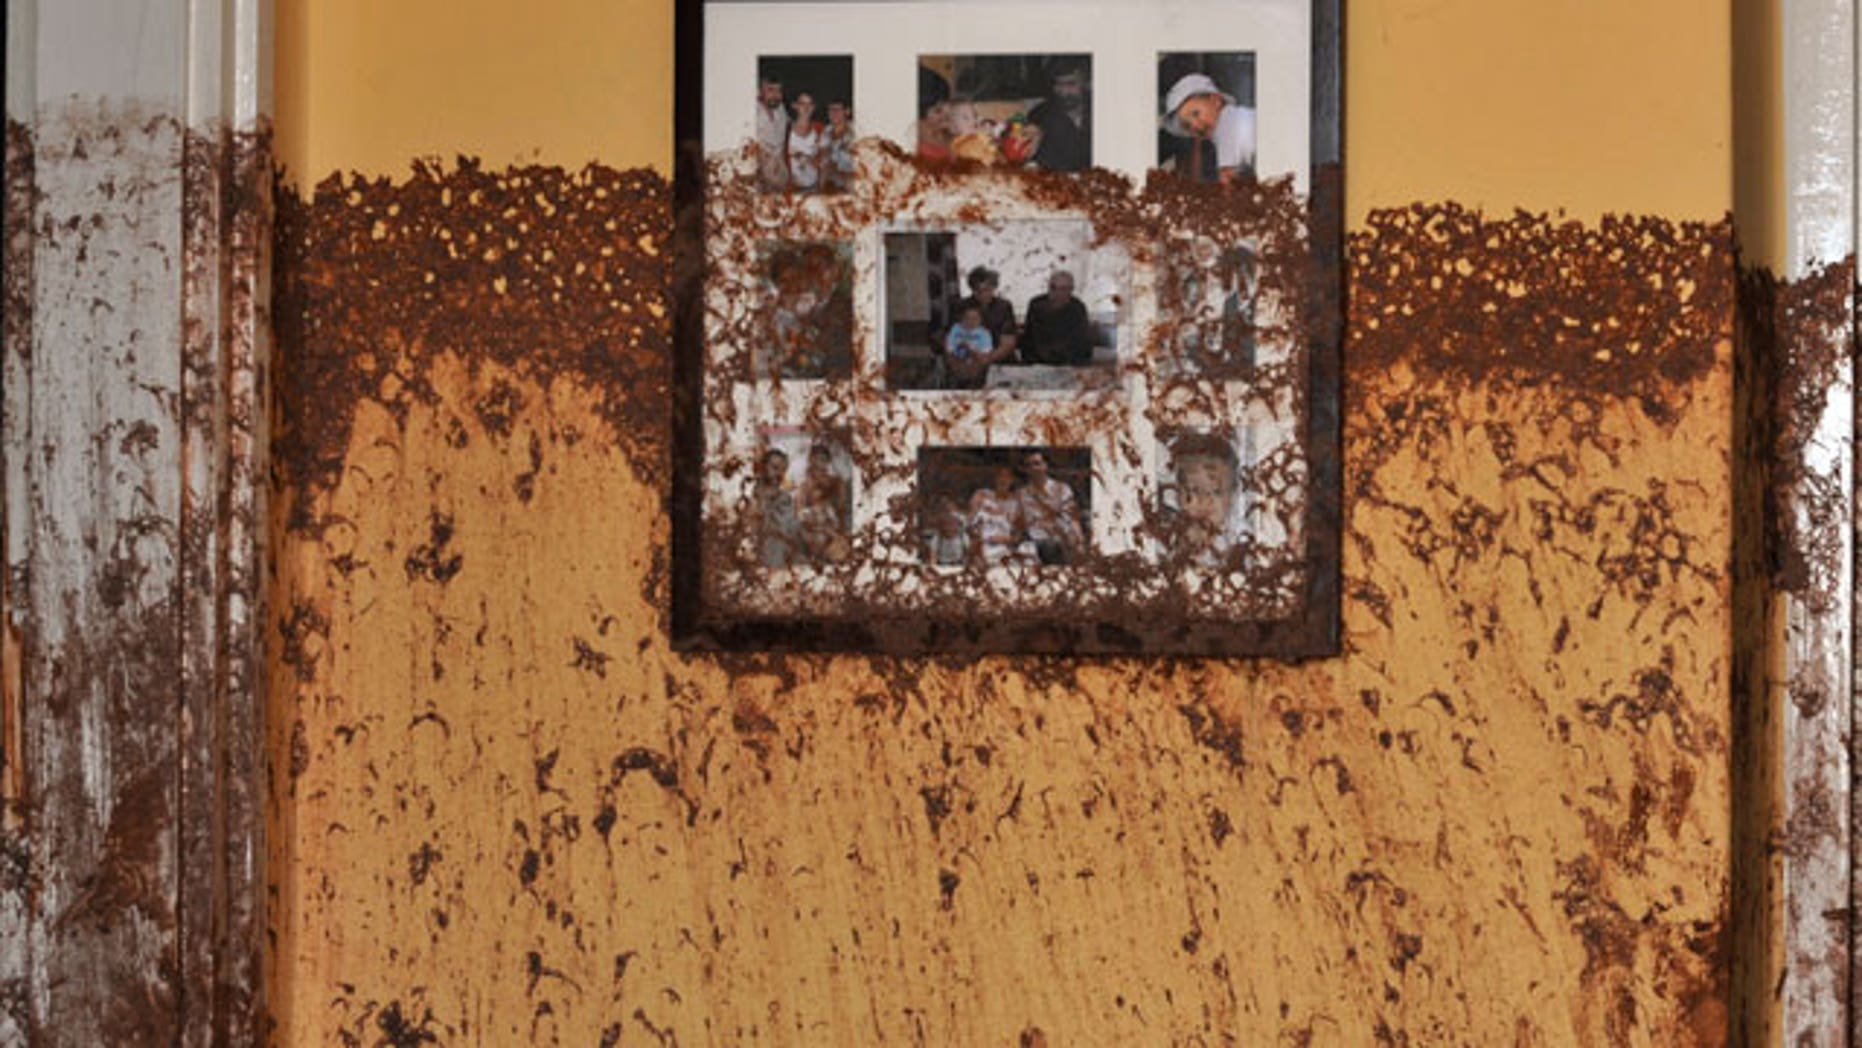 Family photos on a wall show the height of the sludge after a flood of toxic mud broke into a home in the village of Kolontar, Hungary, Thursday, Oct. 7, 2010. Monday's flooding was caused by the rupture of a red sludge reservoir at a metals works in western Hungary and has affected seven towns near the Ajkai, 100 miles (160 kilometers) southwest of Budapest. The flood of toxic mud killed a yet unknown number of people, injured more than one hundred, with some people still missing.